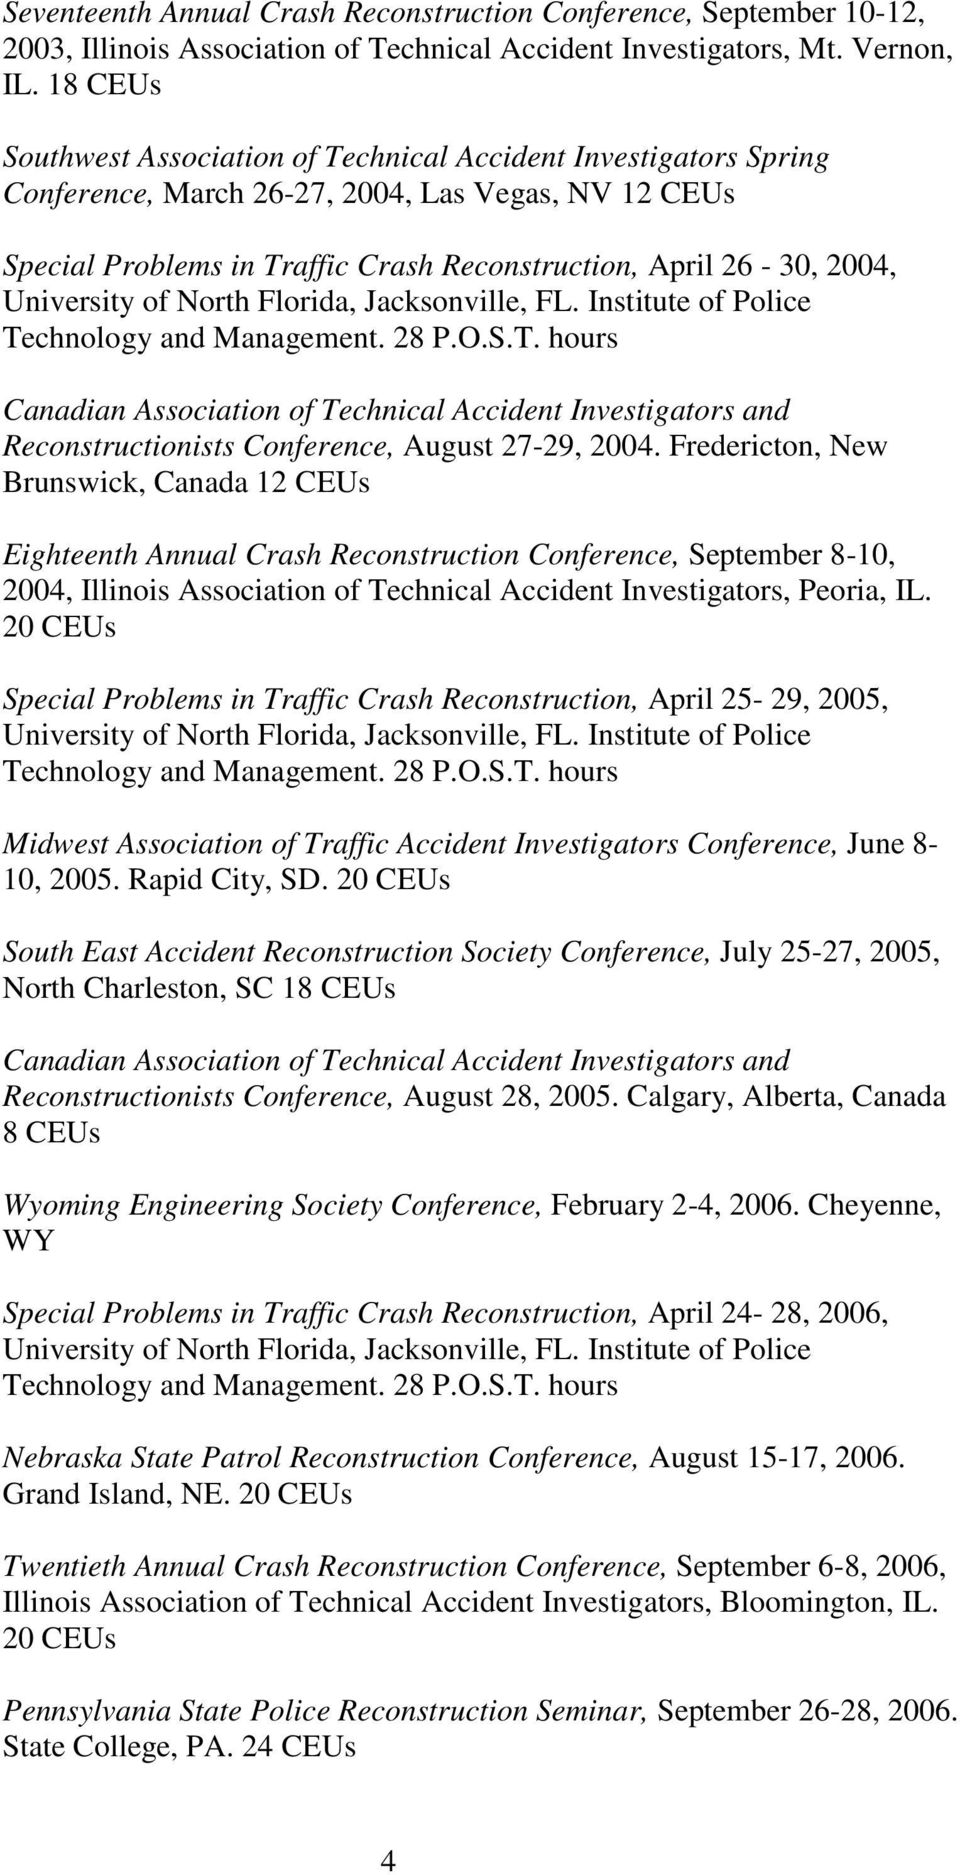 Technology and Management. 28 P.O.S.T. hours Canadian Association of Technical Accident Investigators and Reconstructionists Conference, August 27-29, 2004.